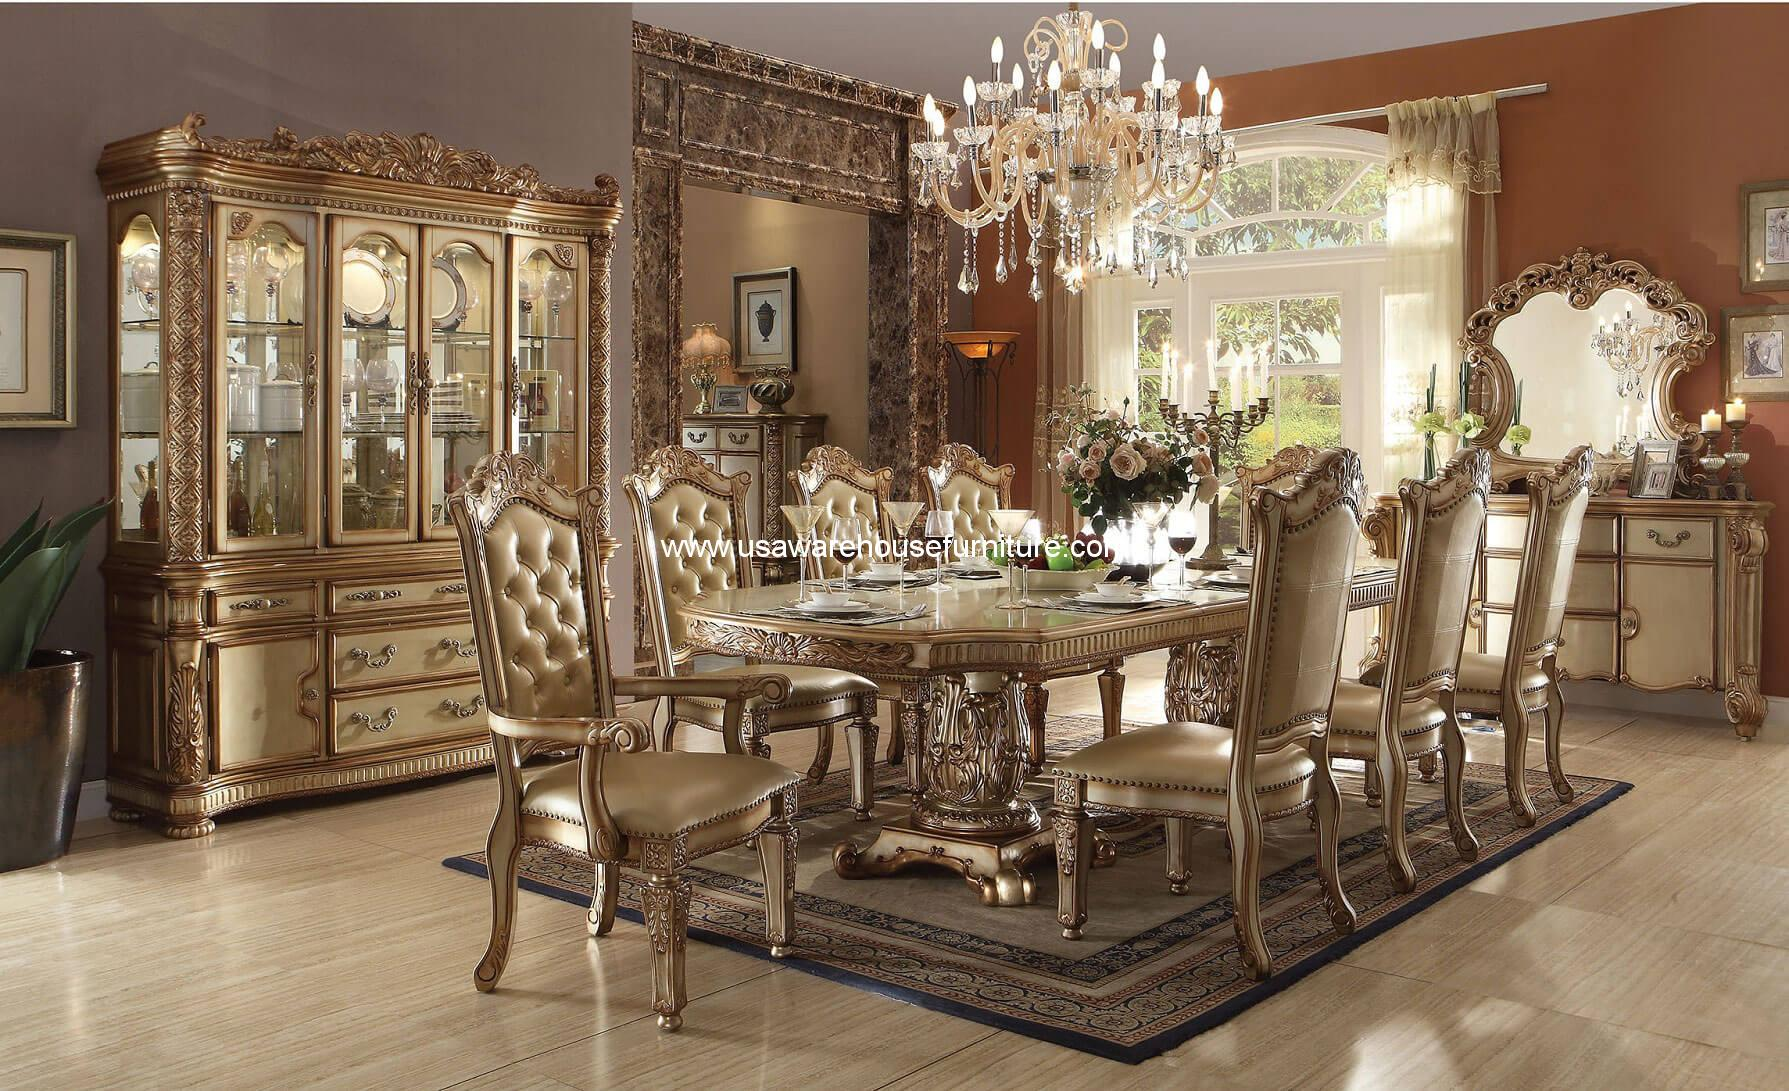 11 Piece Dining Room Set 11 Piece Vendome Dining Set Gold Patina Finish Usa Warehouse